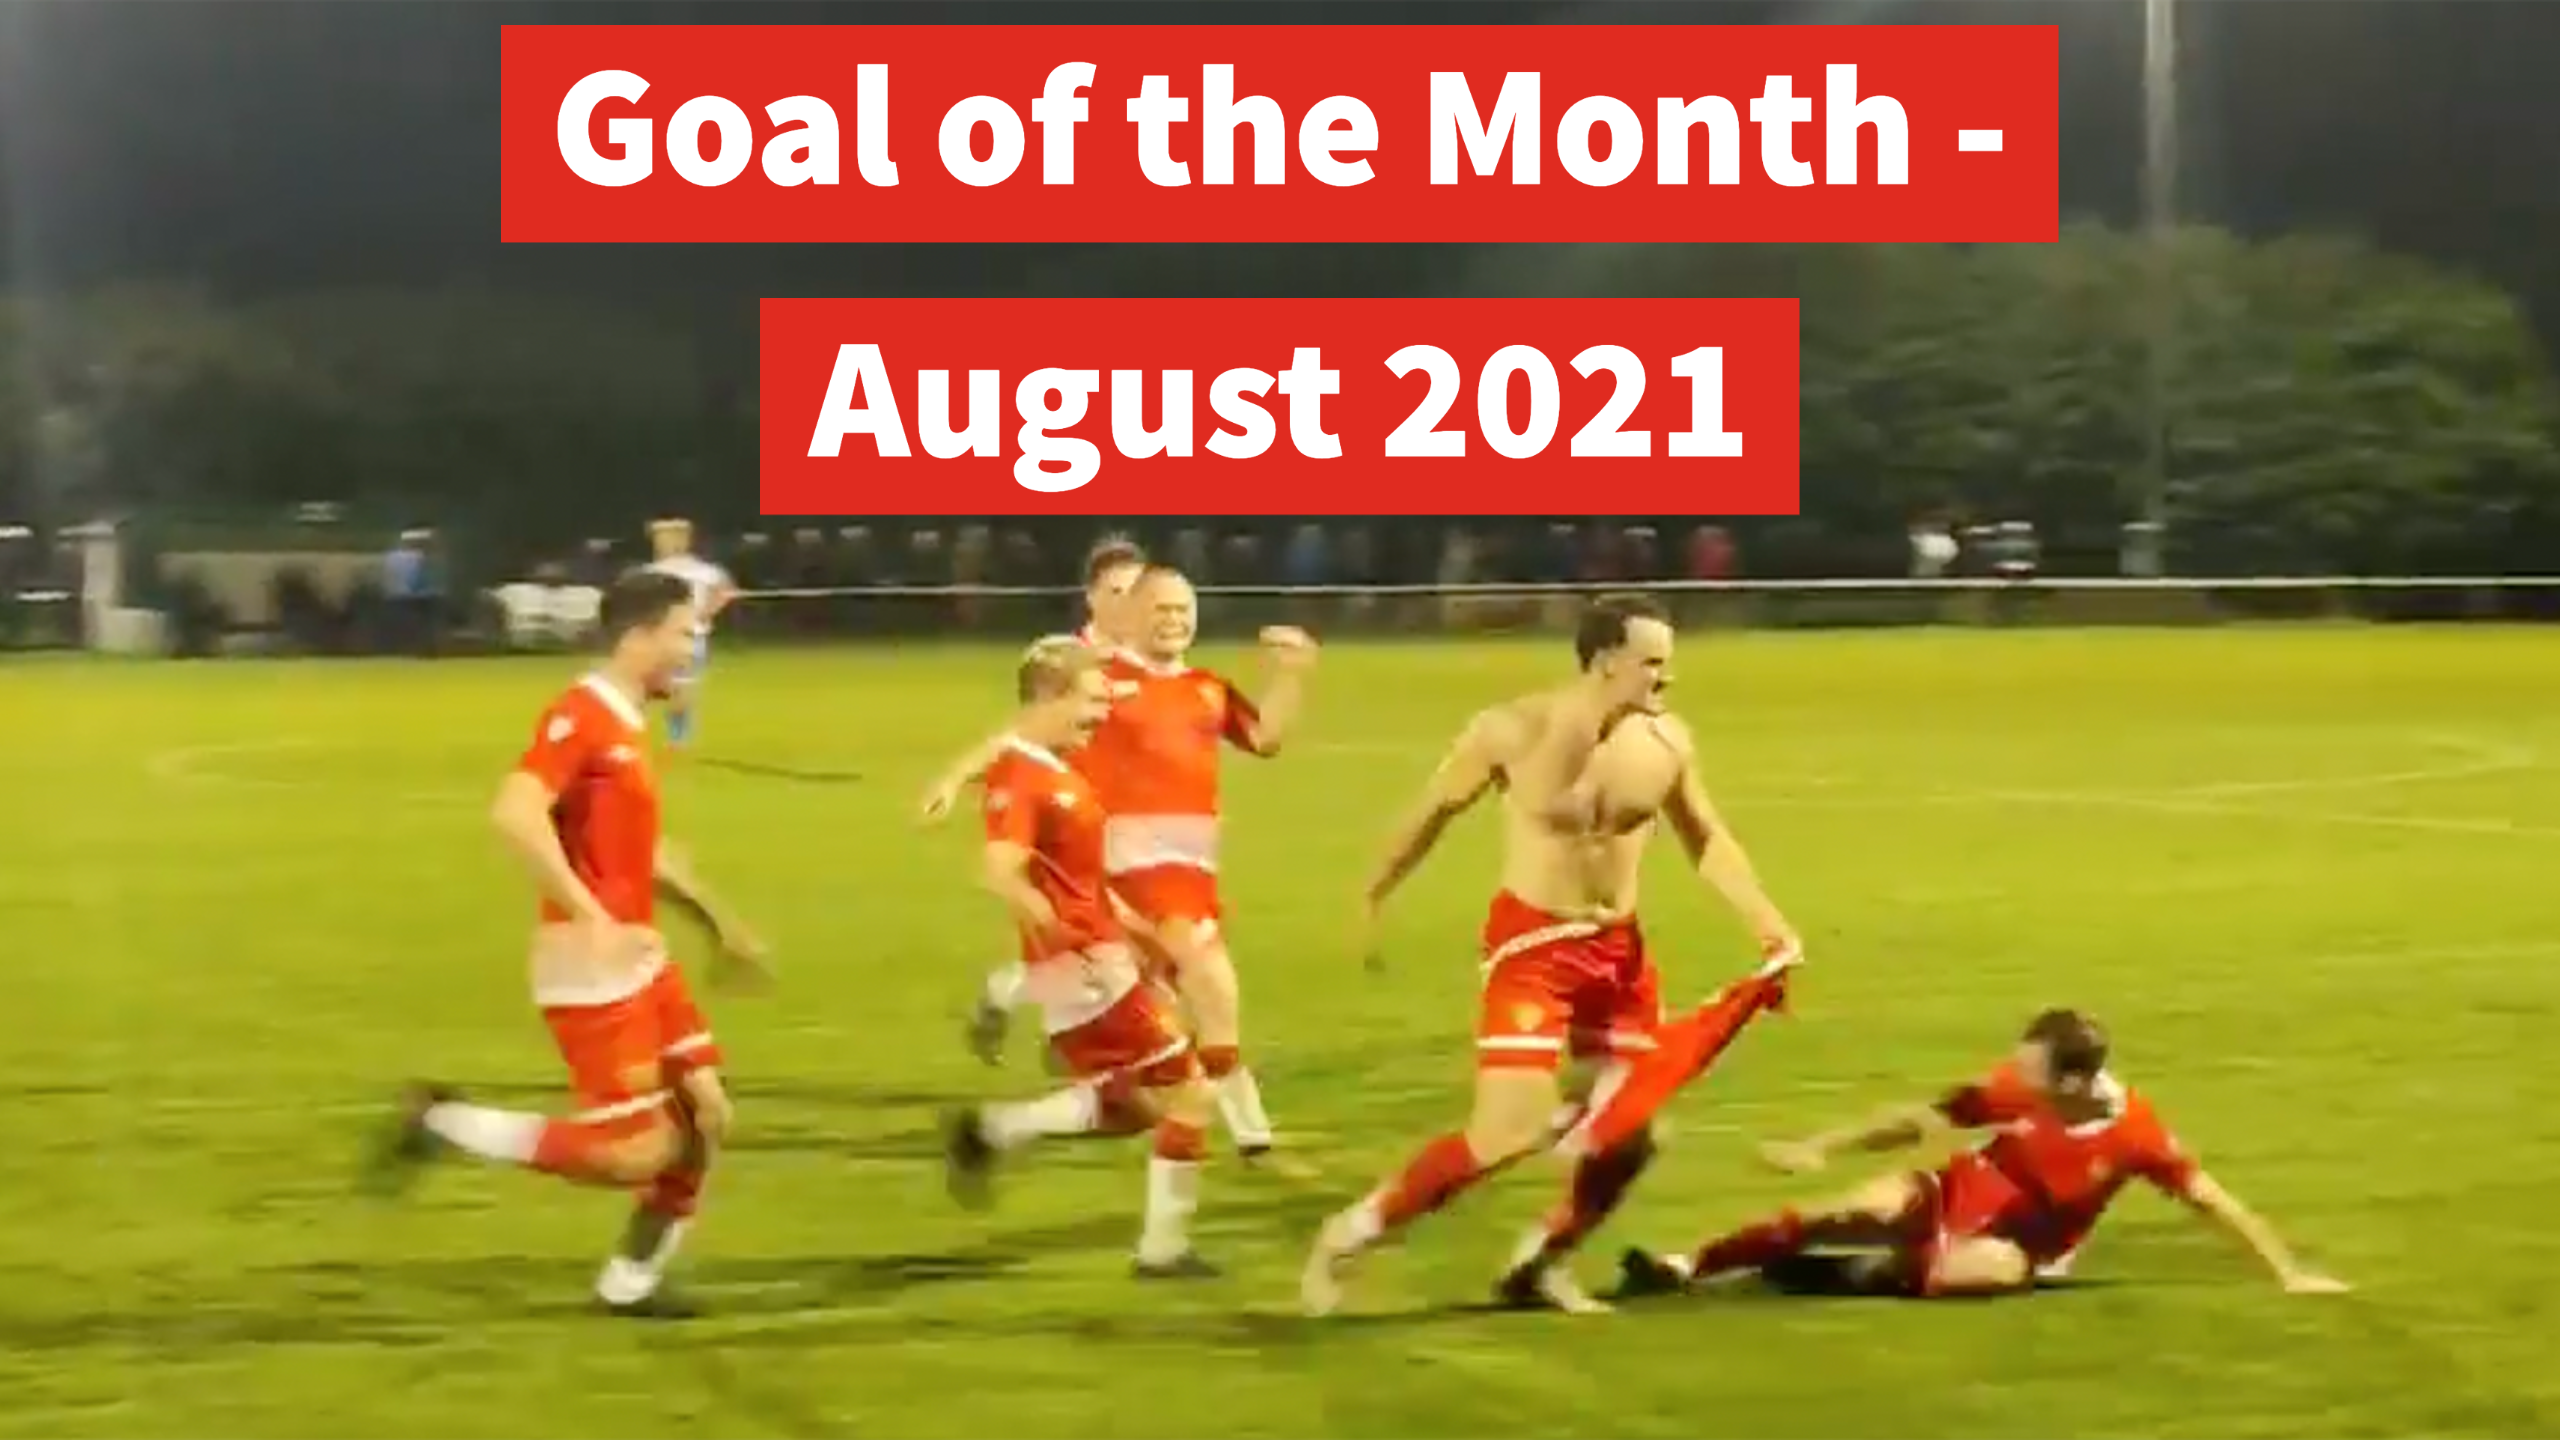 Goal of the Month - August 2021